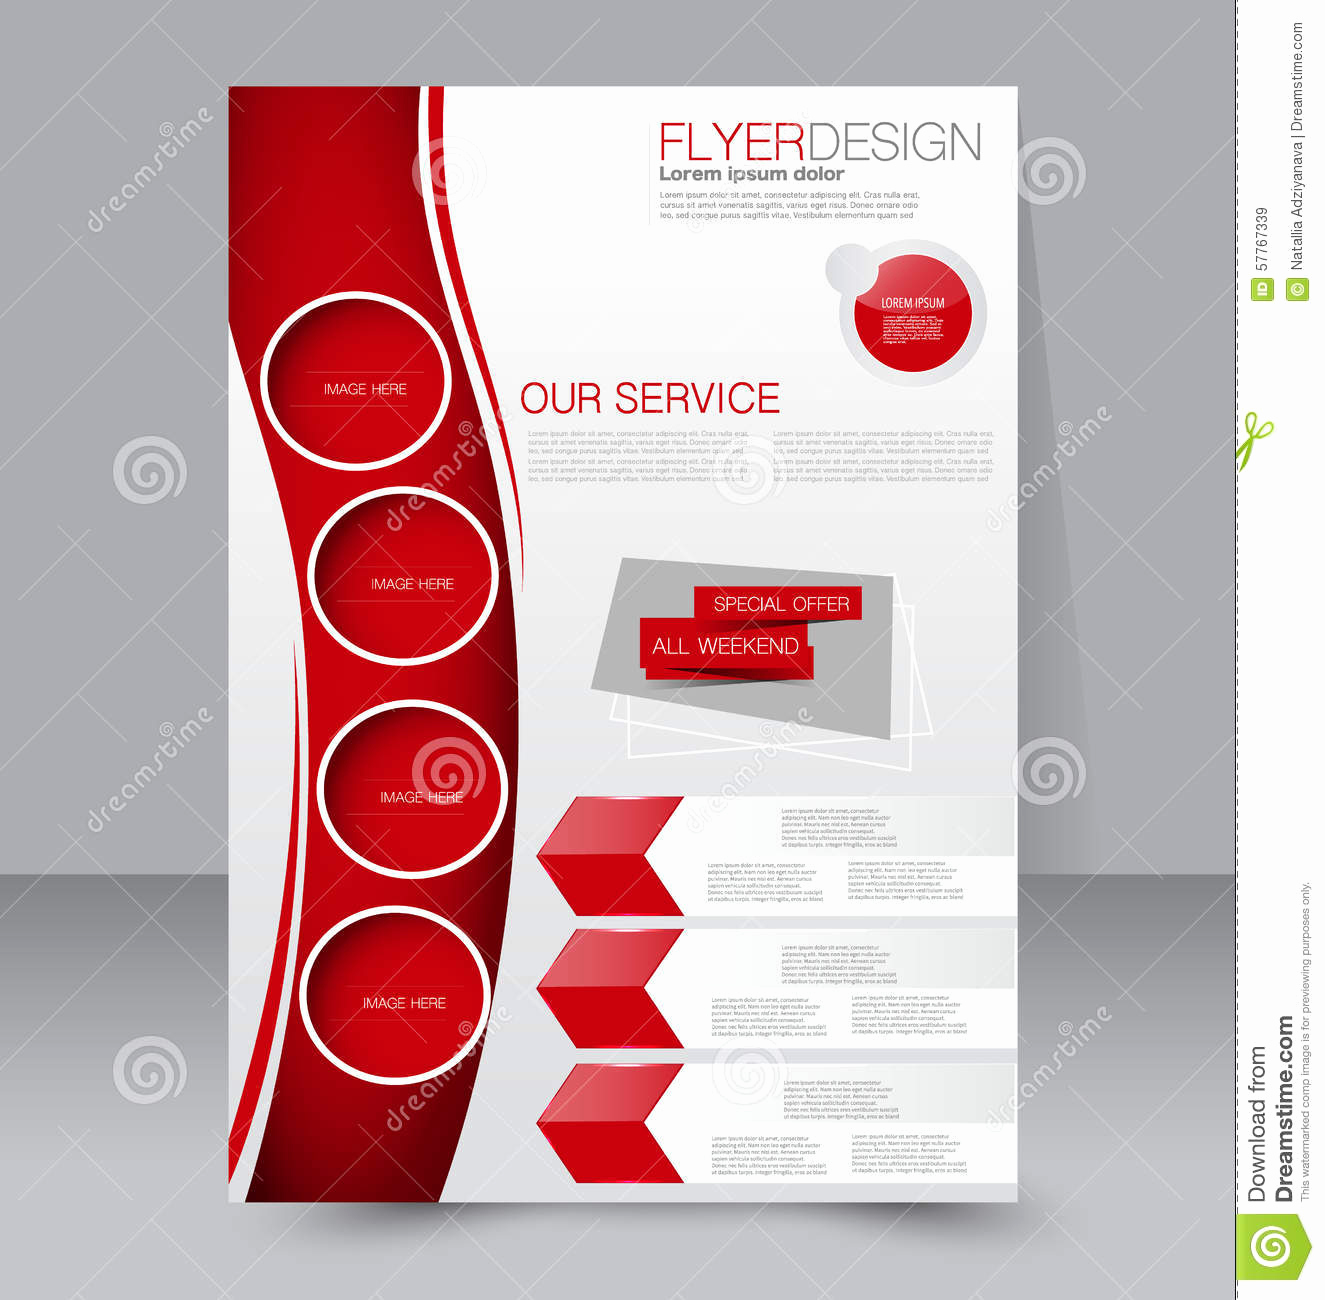 Business Flyers Template Free Inspirational Flyer Template Business Brochure Editable A4 Poster